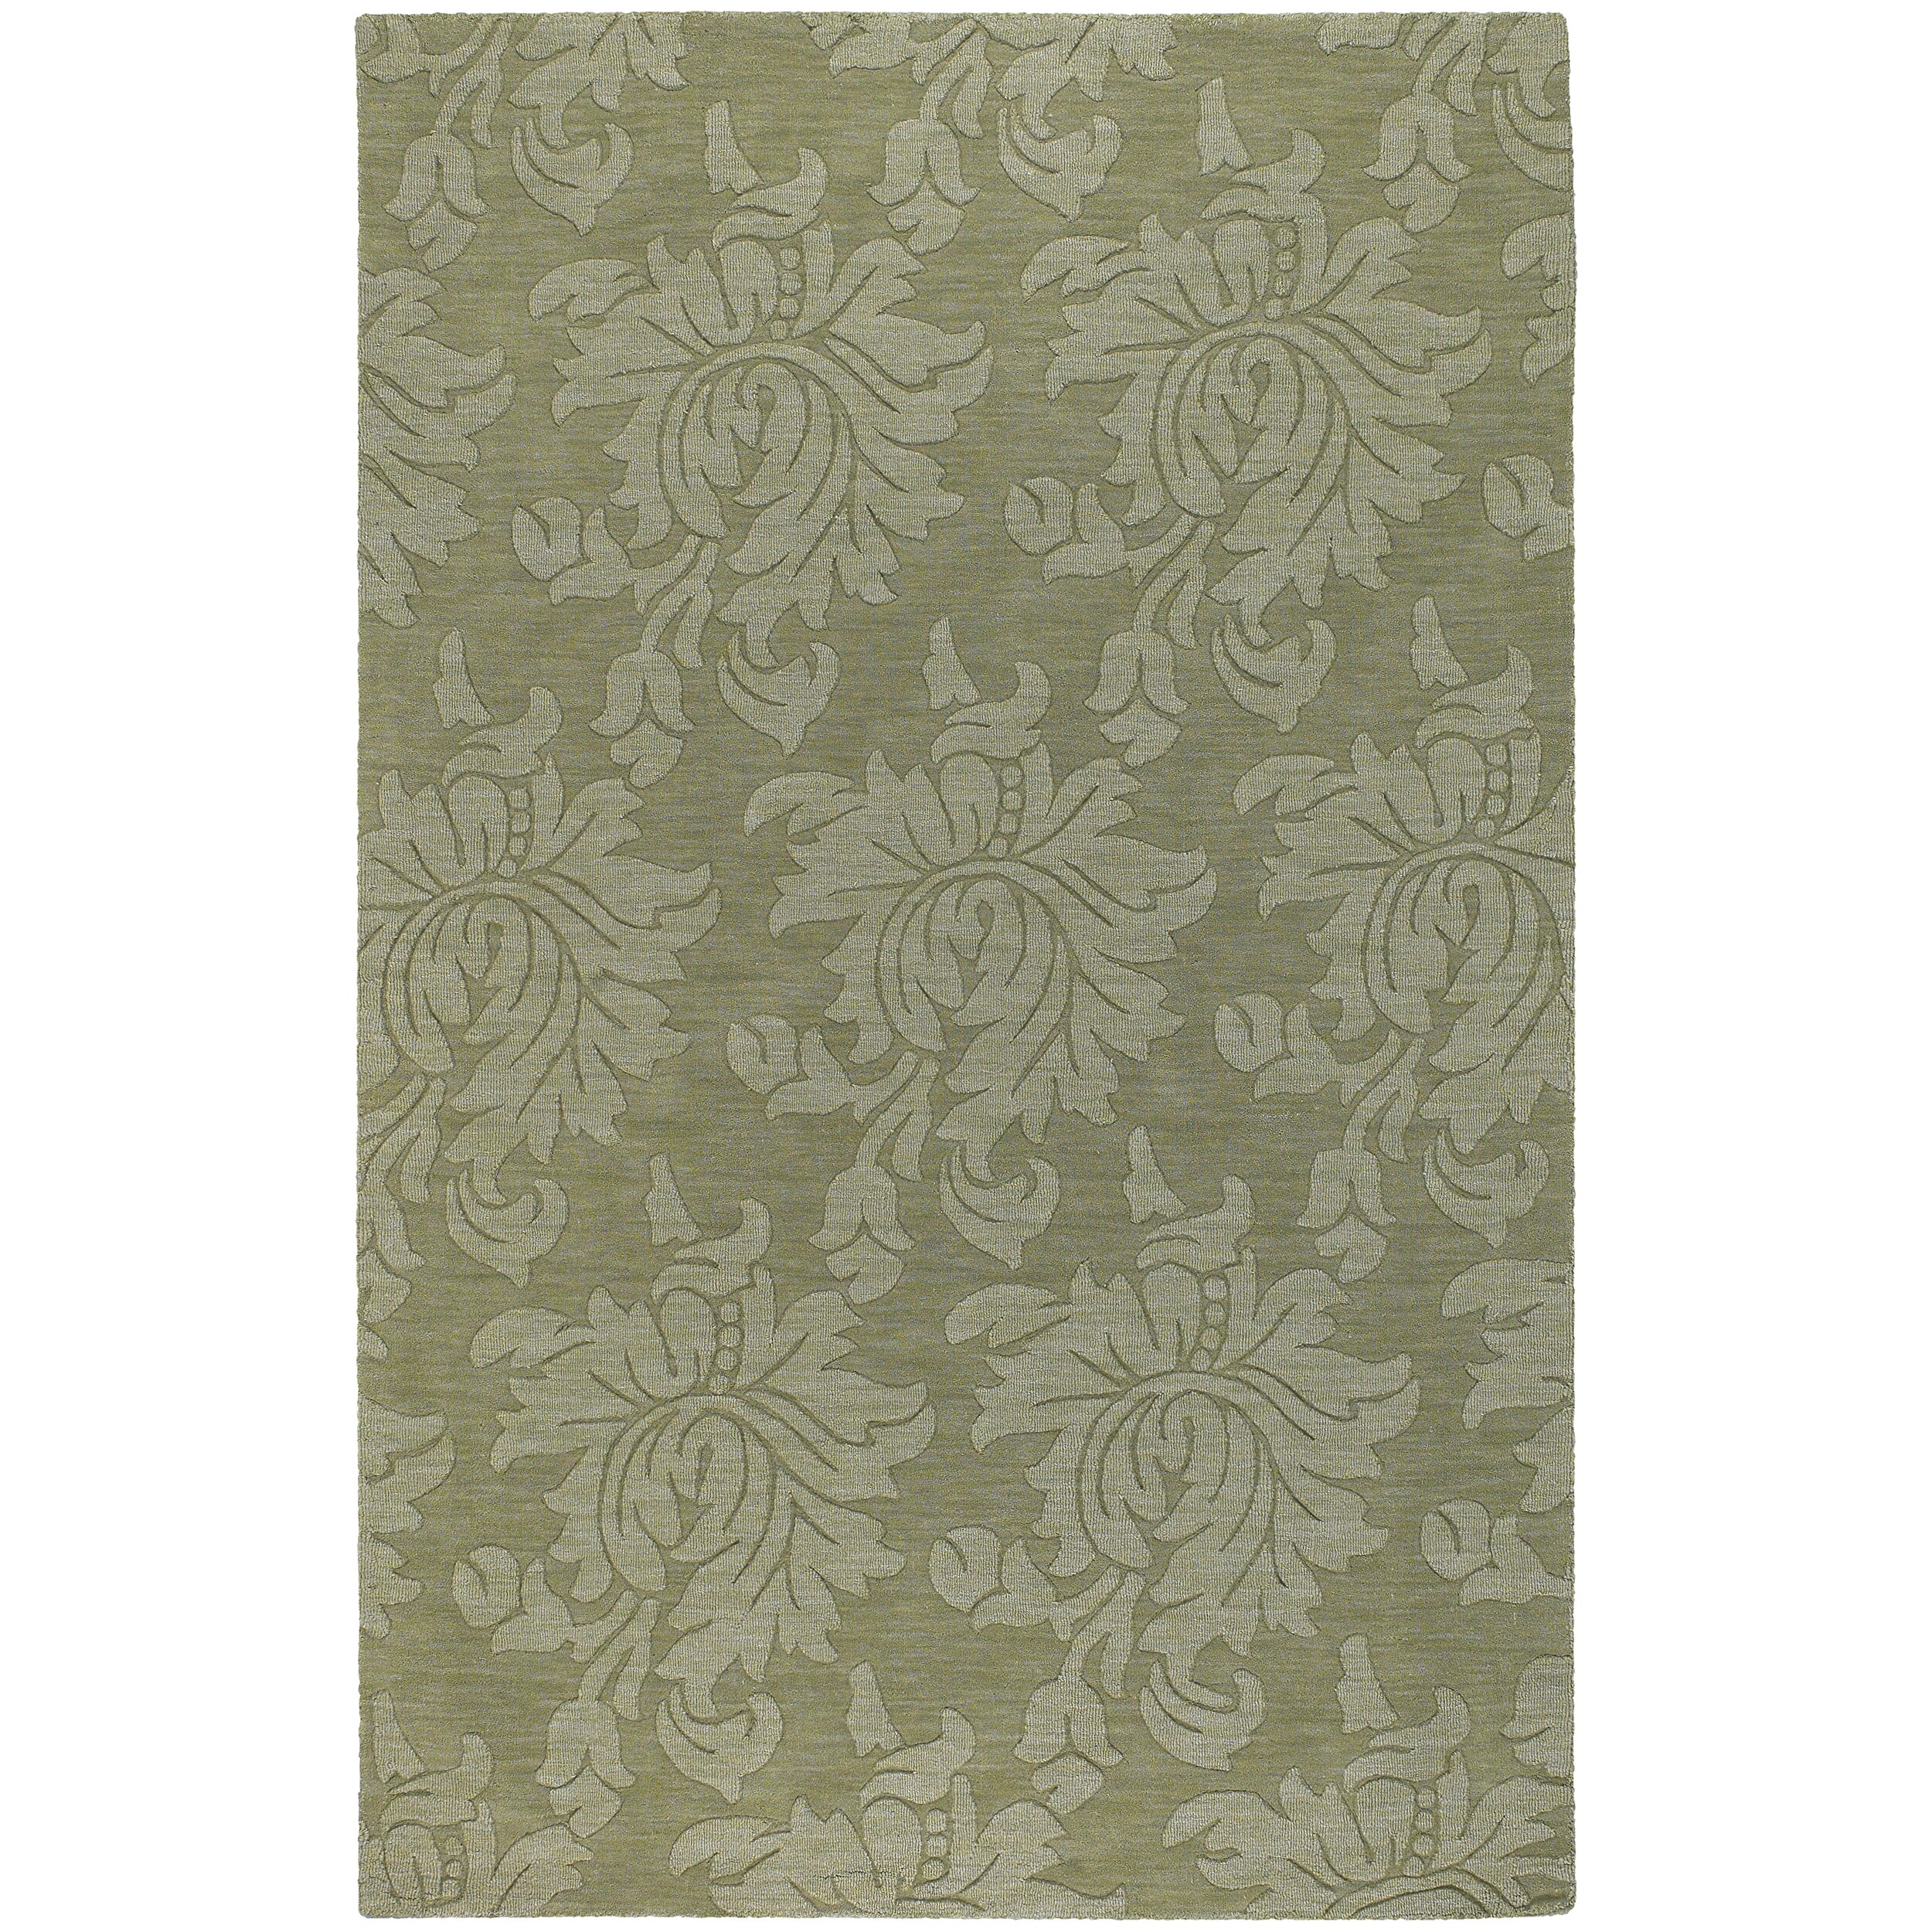 Hand-crafted Solid Green Damask Chero Wool Area Rug (3'3 x 5'3)